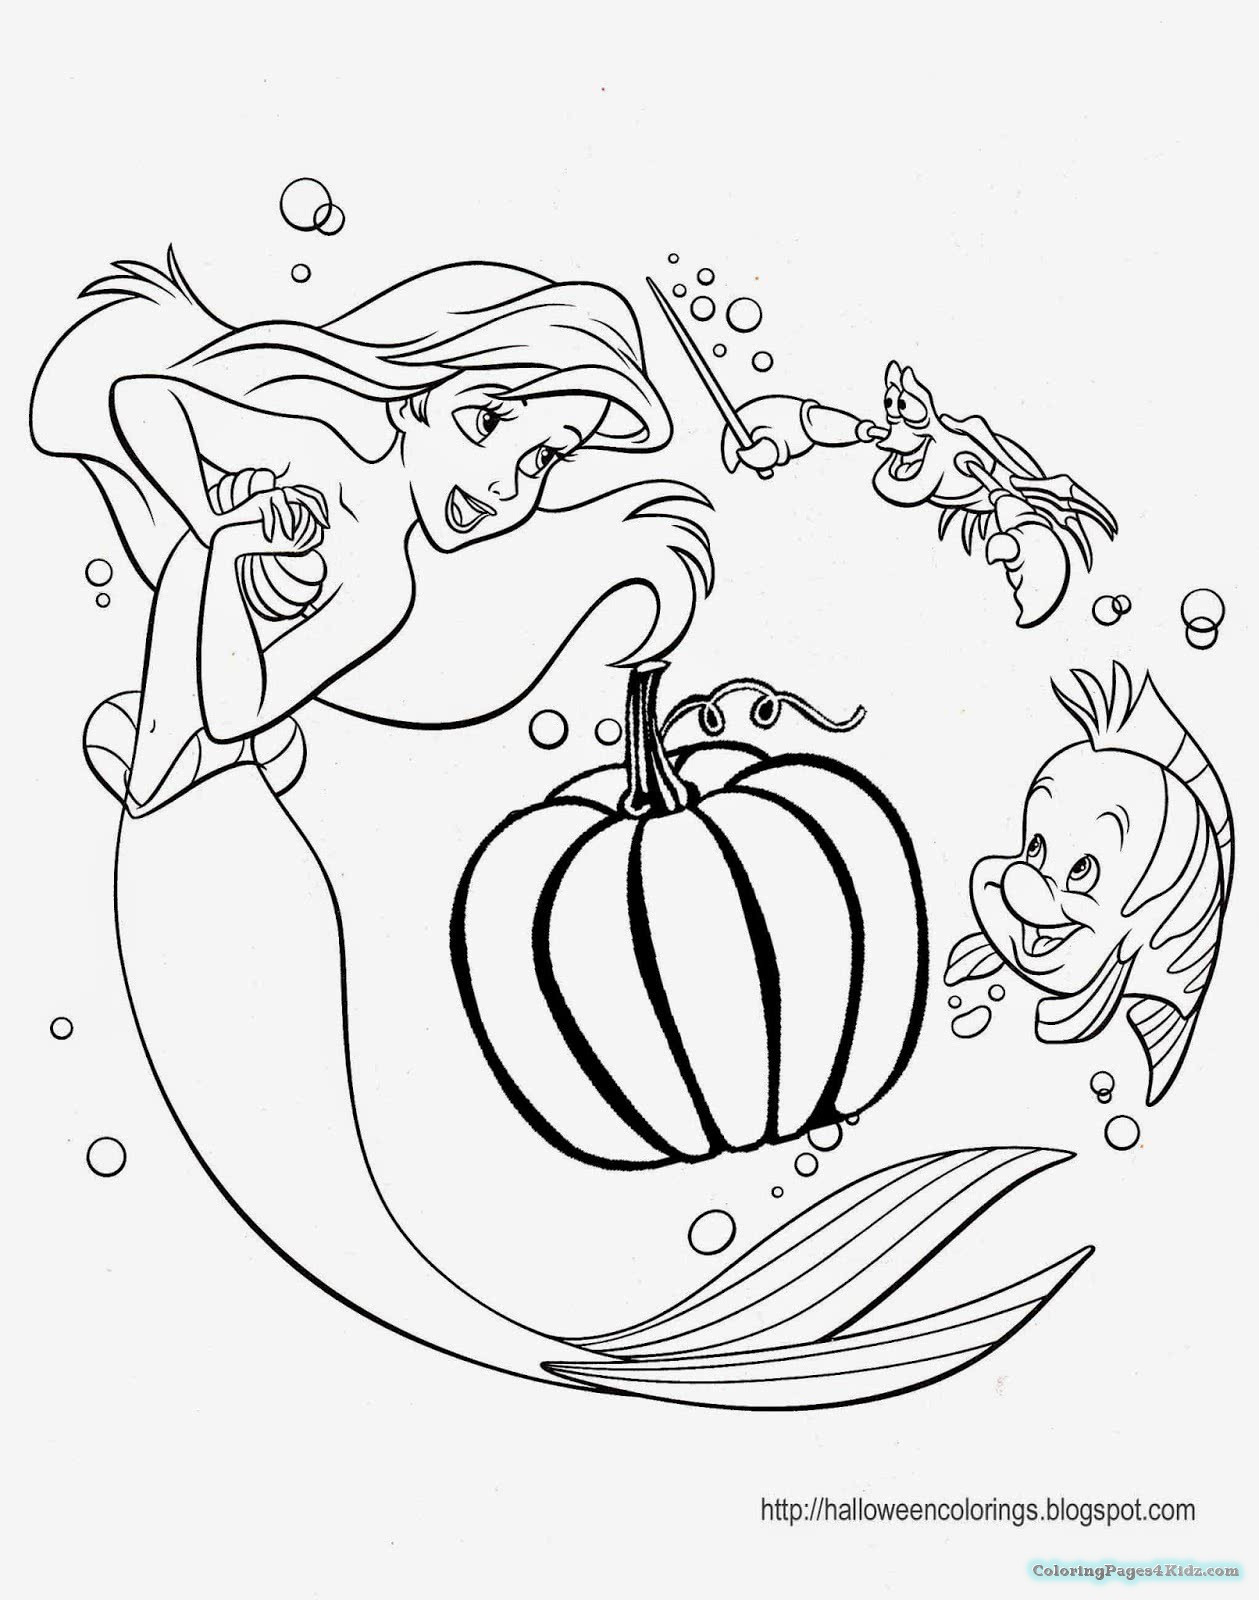 Disney Halloween Coloring Pages For Kids  Disney Princess Halloween Coloring Pages